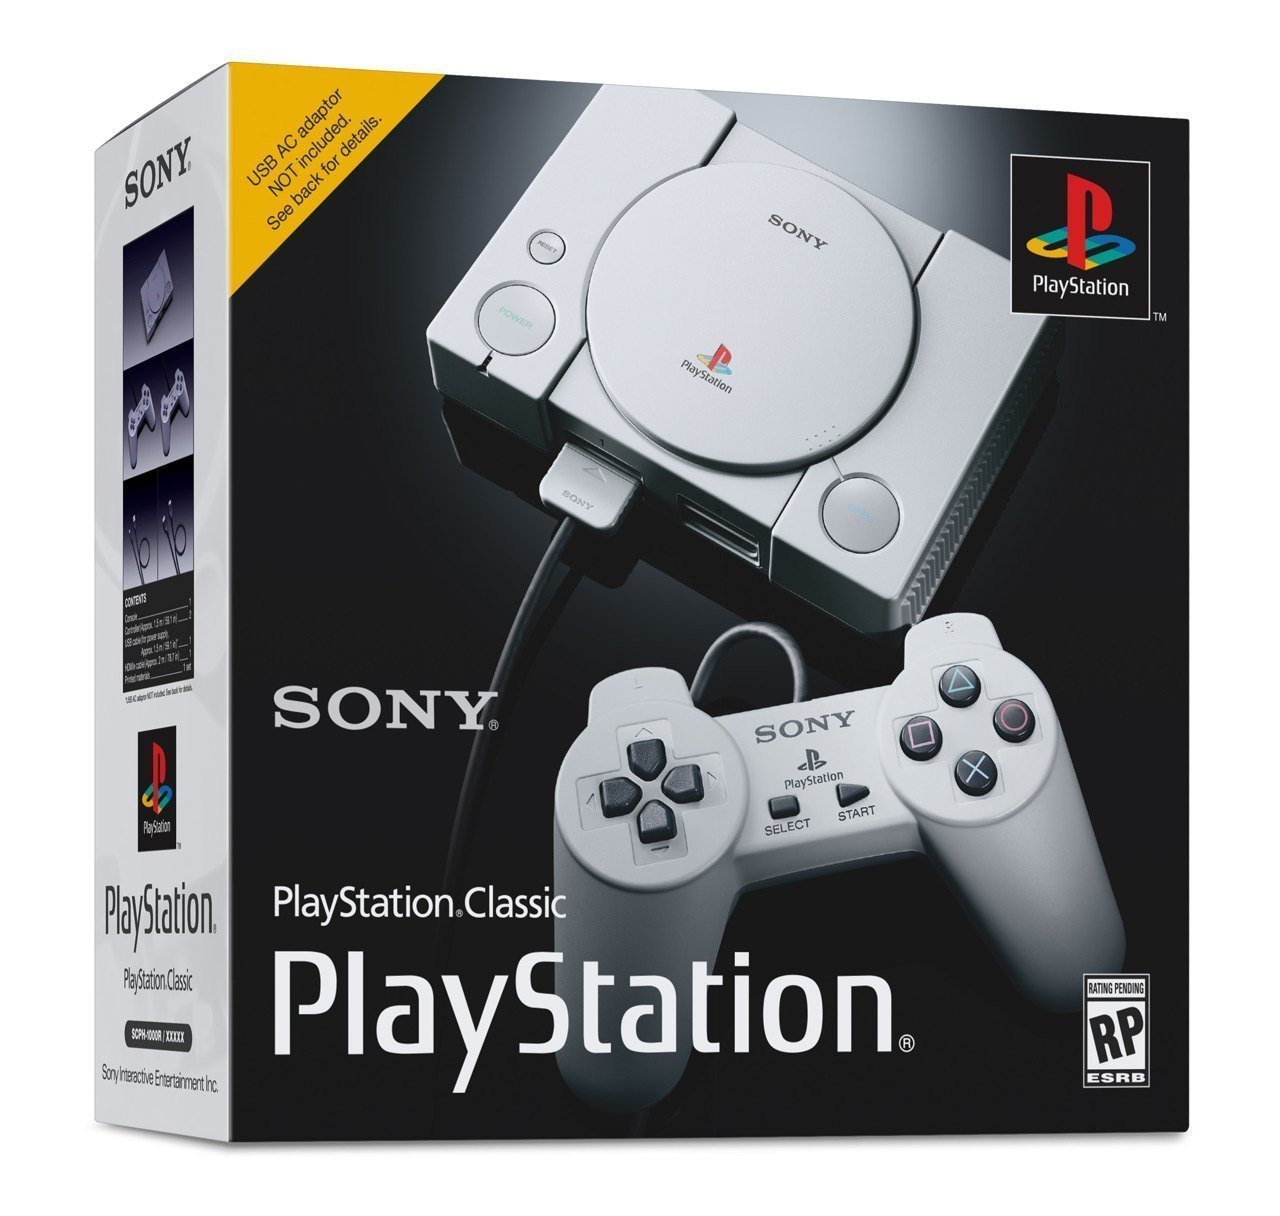 PlayStation Classic offers 20 PS1 games in one miniature package